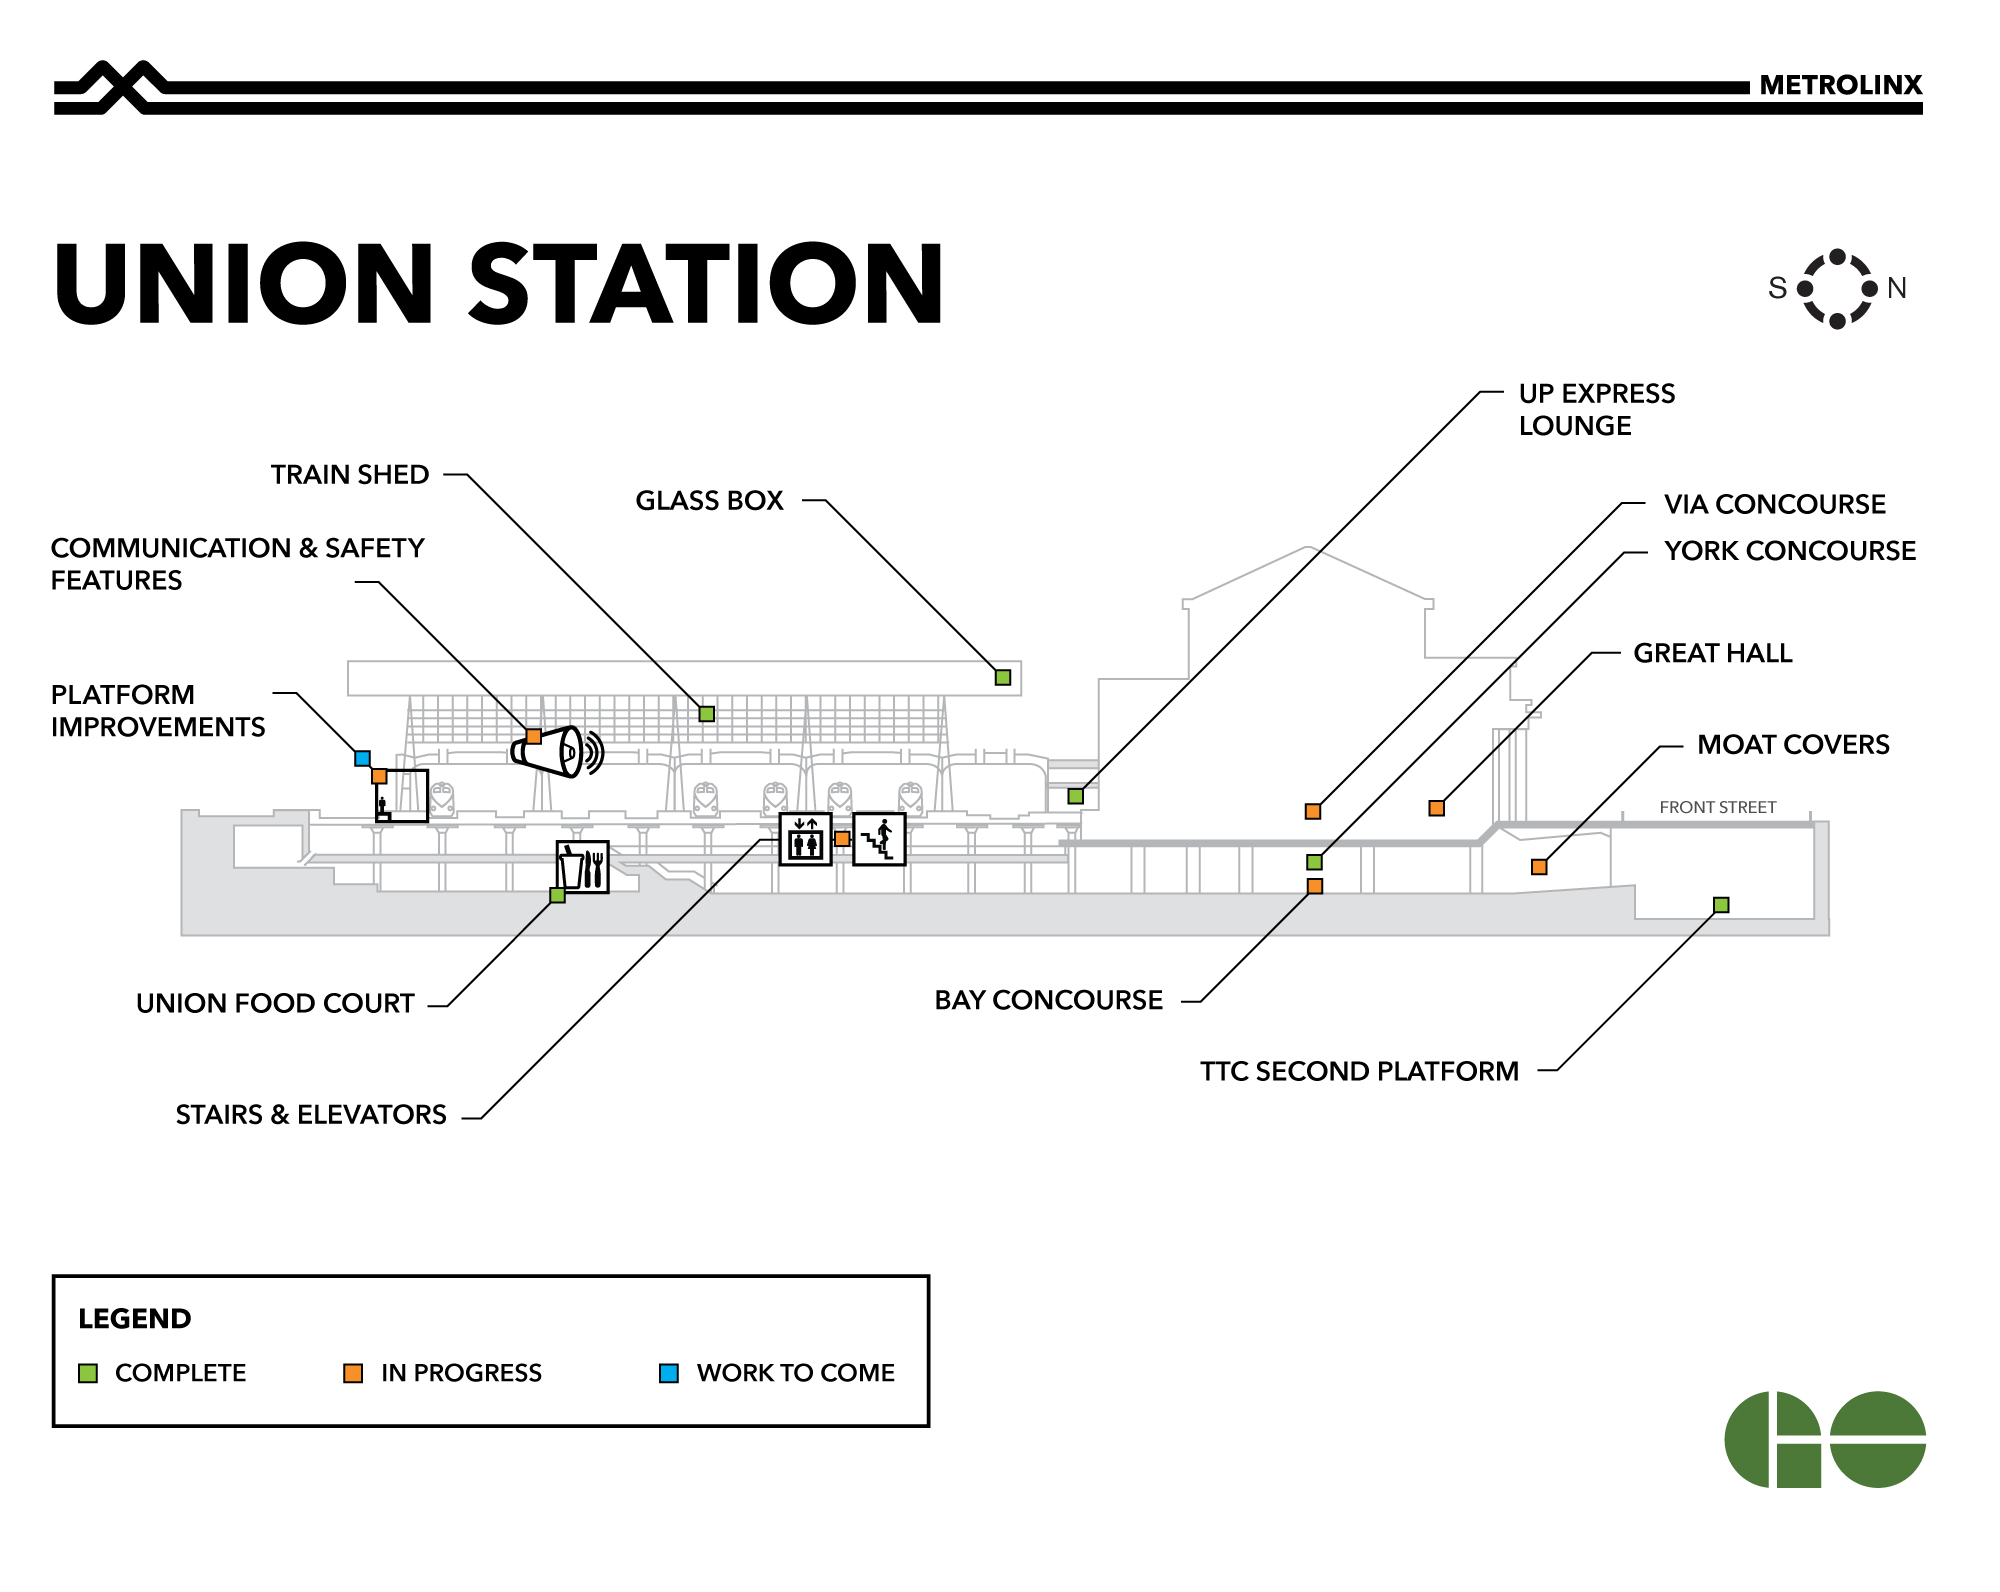 Map showing completed and upcoming work at Union Station